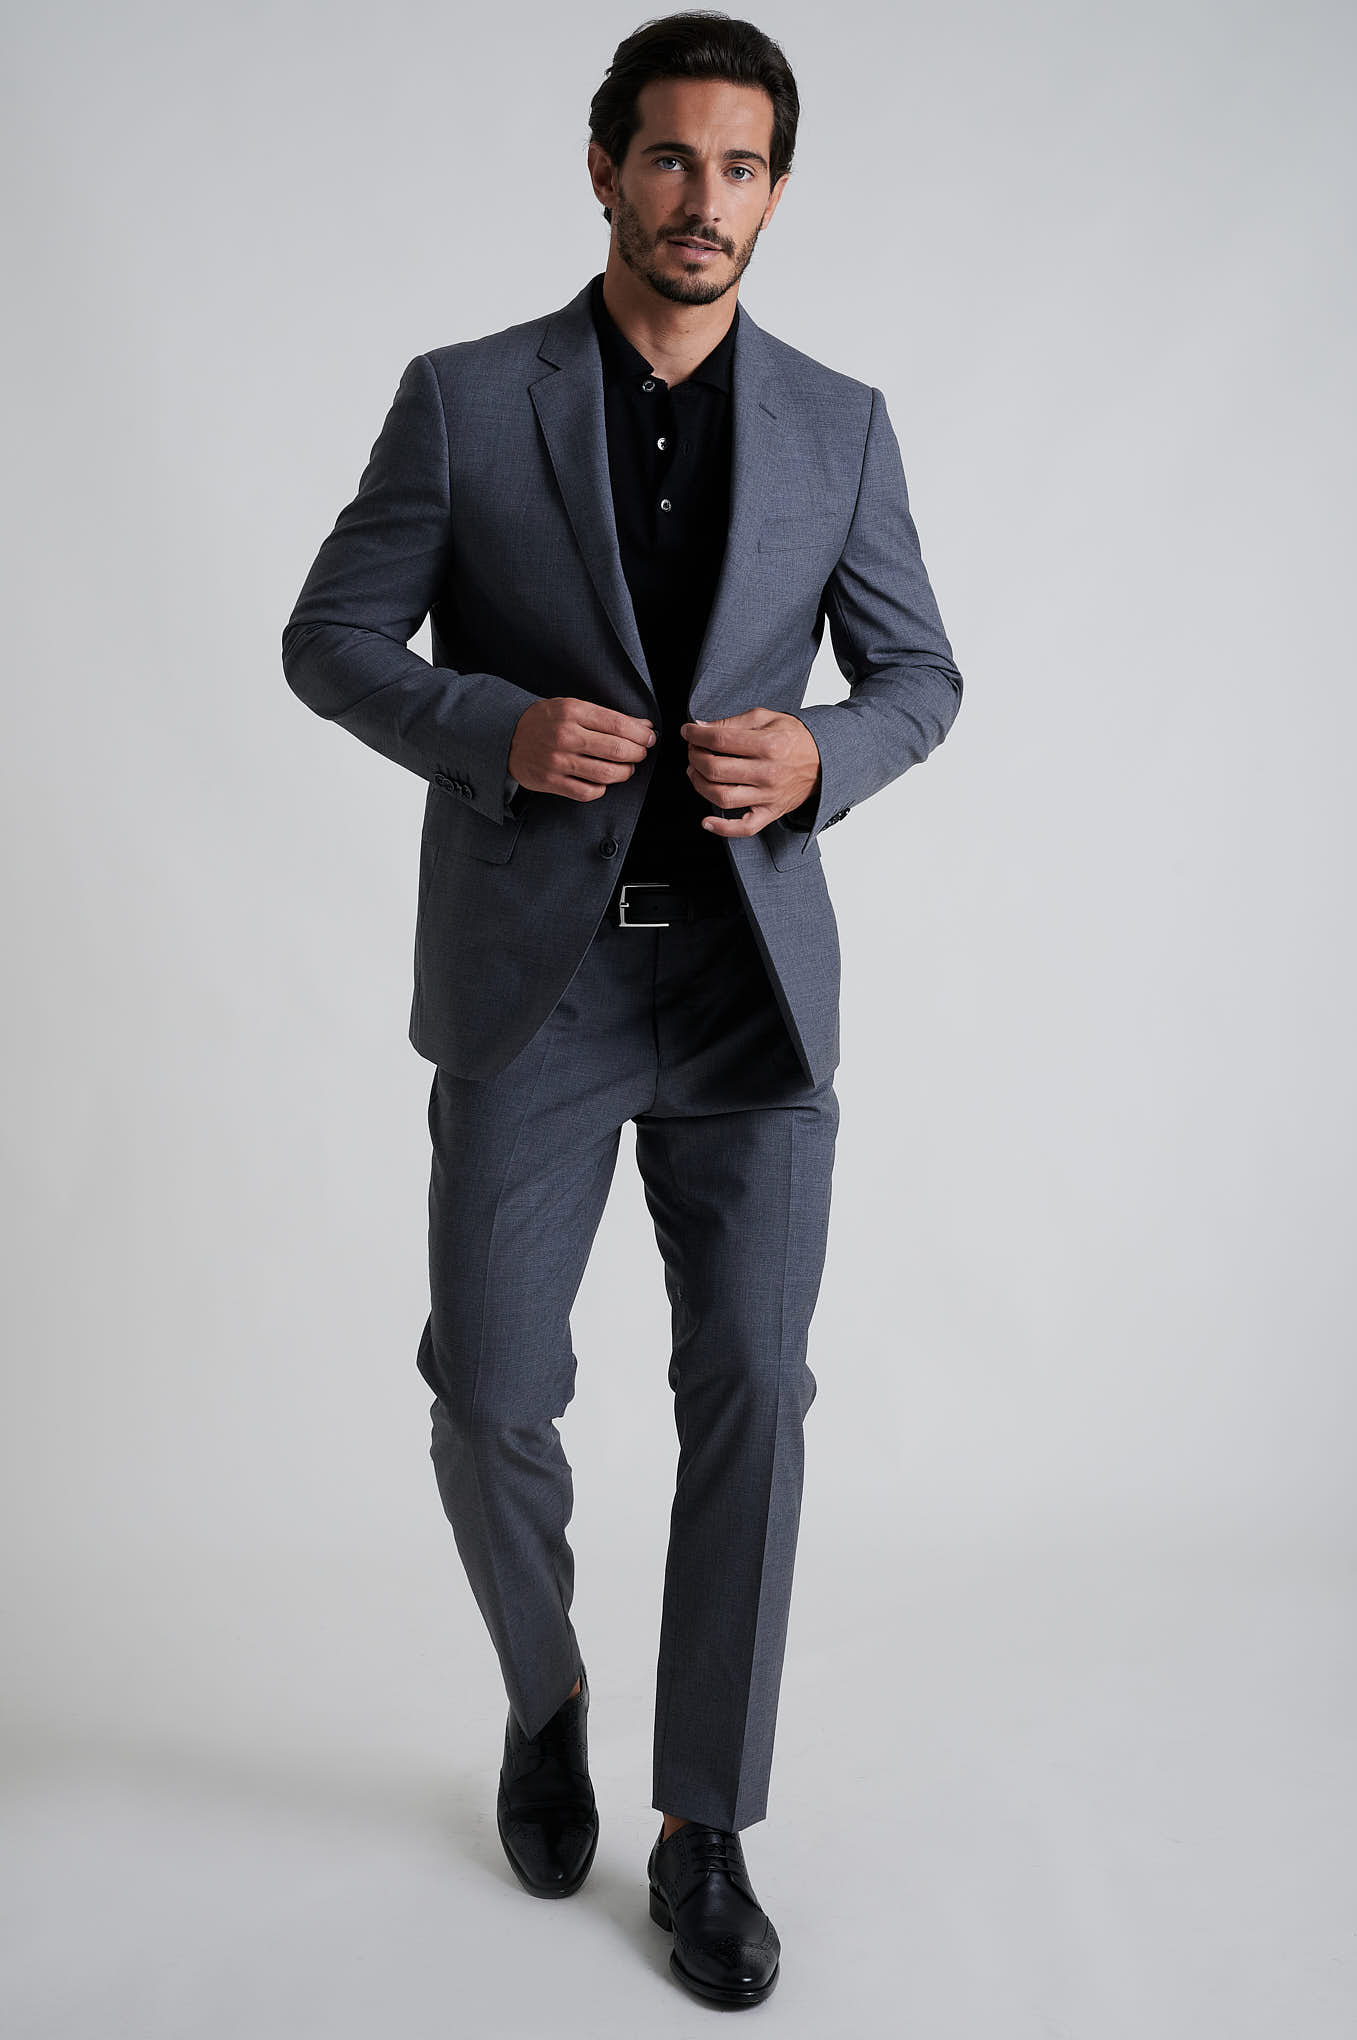 Suit Medium Grey Formal Man